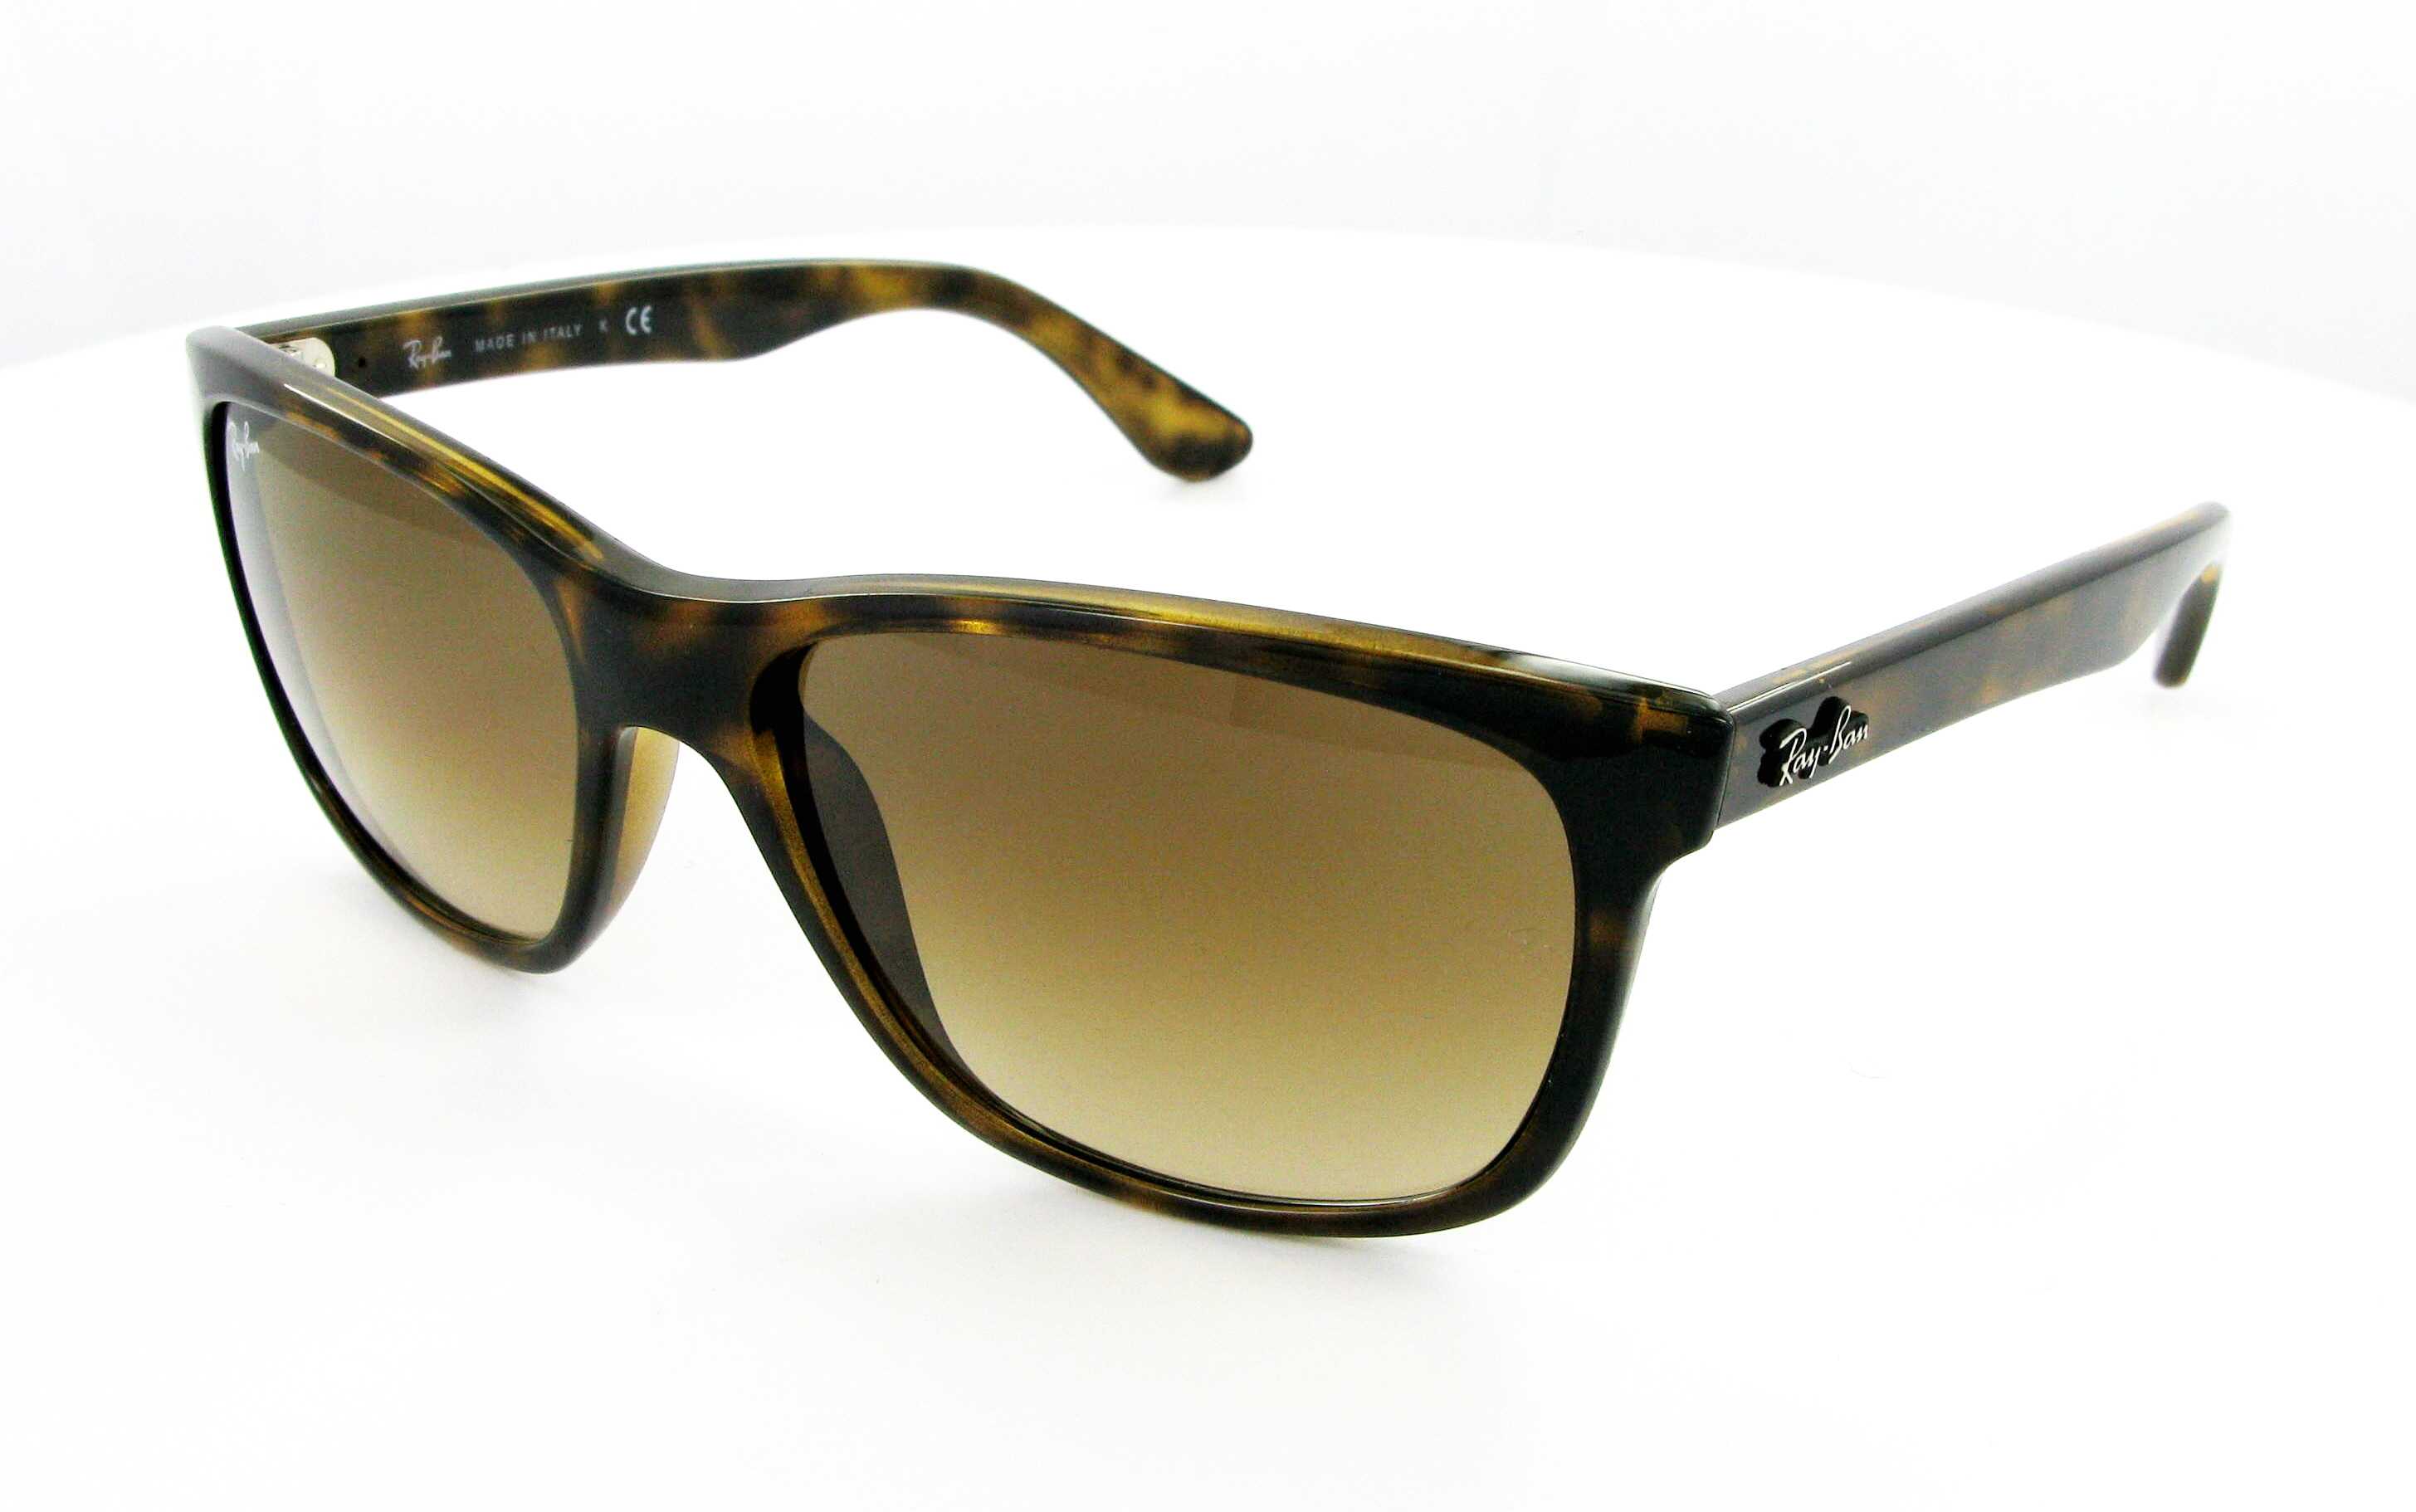 dc1f41f467 Ray Ban Rb4181 Review « Heritage Malta